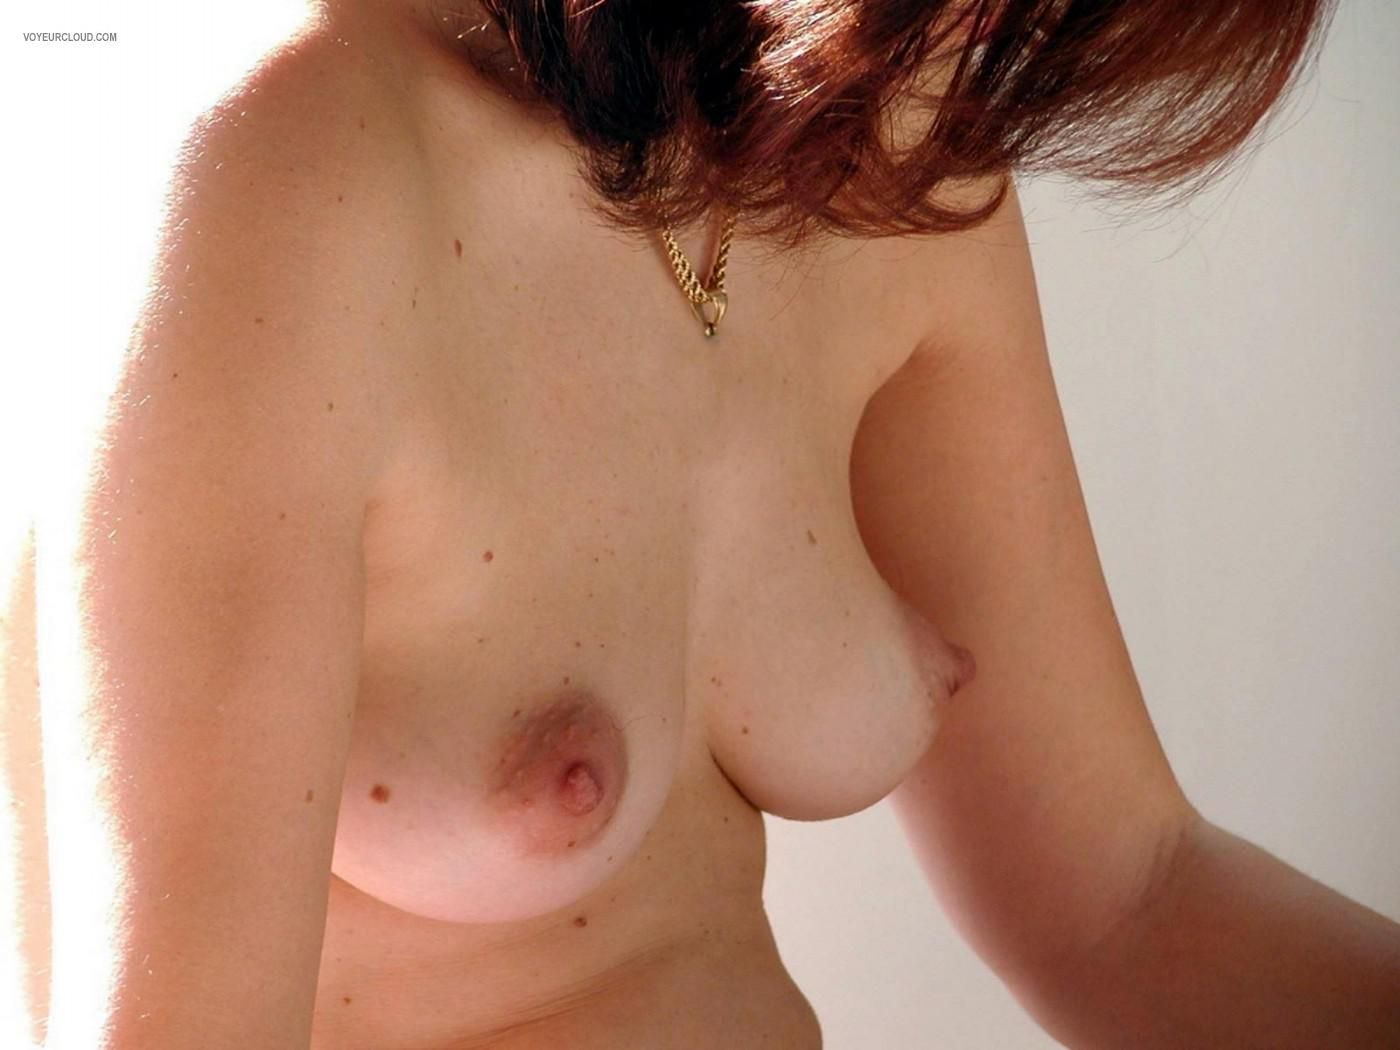 Tit Flash: Wife's Medium Tits - Ana from Portugal